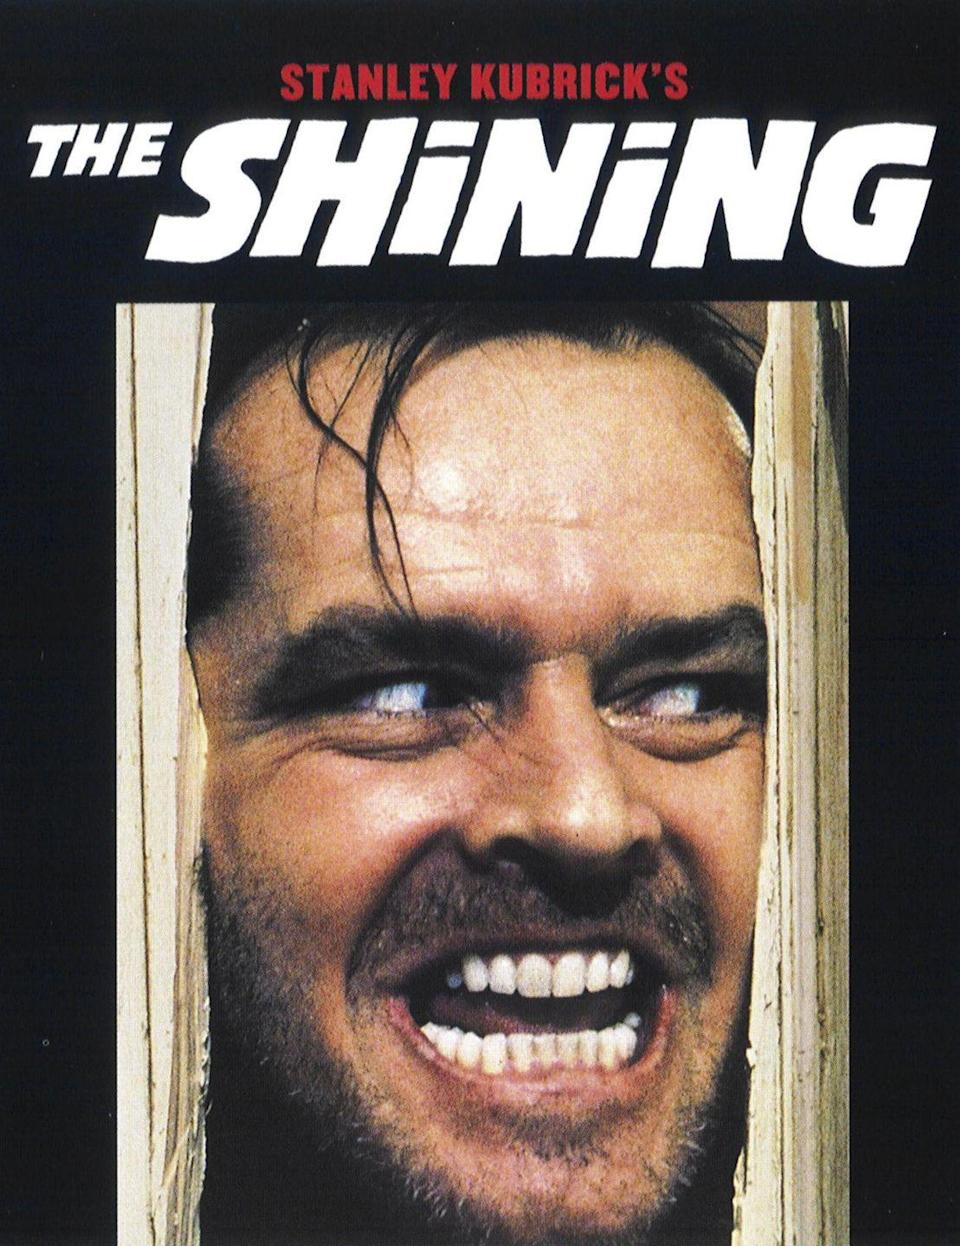 """<p><em>The Shining</em>, one of Jack Nicholson<span class=""""redactor-invisible-space"""">'s most well-known films, was released this year. The film is still considered one of the scariest of all time, and <a href=""""http://www.goodhousekeeping.com/life/entertainment/a34867/the-shining-grady-twins-now/"""" rel=""""nofollow noopener"""" target=""""_blank"""" data-ylk=""""slk:the Grady twins"""" class=""""link rapid-noclick-resp"""">the Grady twins</a> went on to inspire Halloween costumes for years to come. </span></p>"""